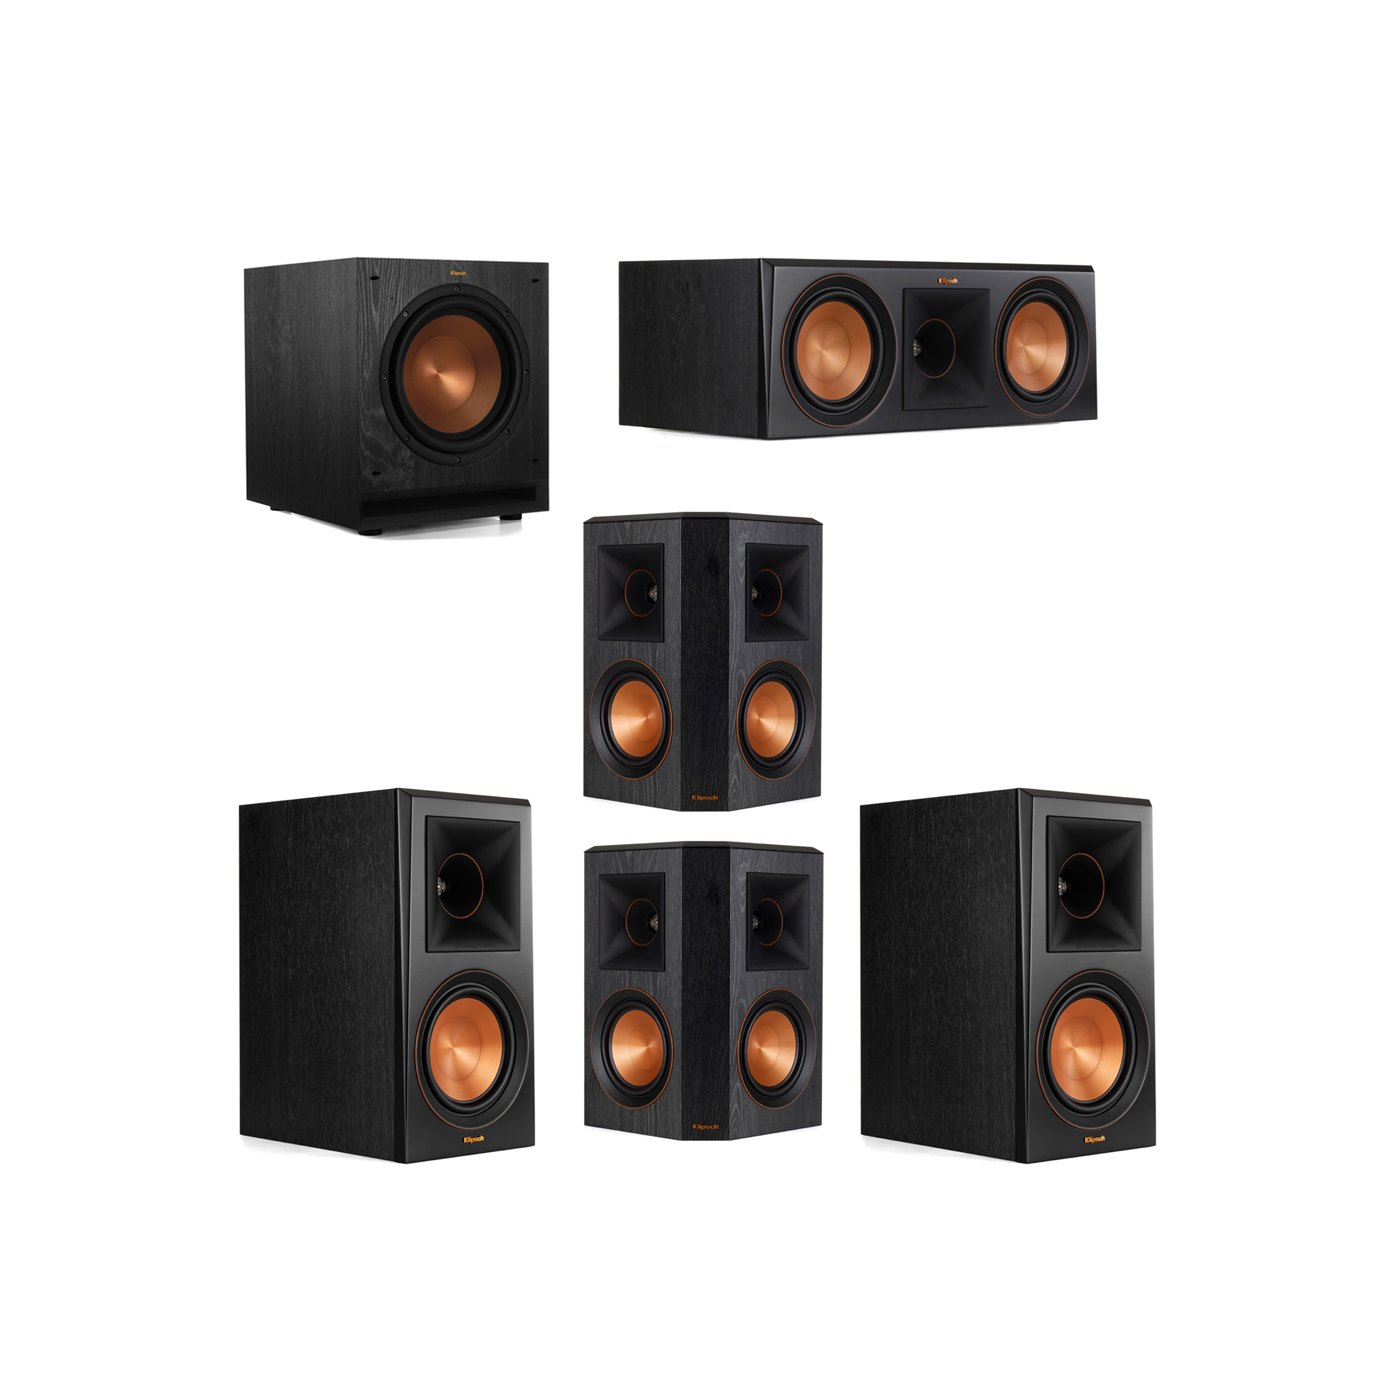 Klipsch 5.1 System with 2 RP-600M Bookshelf Speakers, 1 Klipsch RP-600C Center Speaker, 2 Klipsch RP-502S Surround Speakers, 1 Klipsch SPL-100 Subwoofer